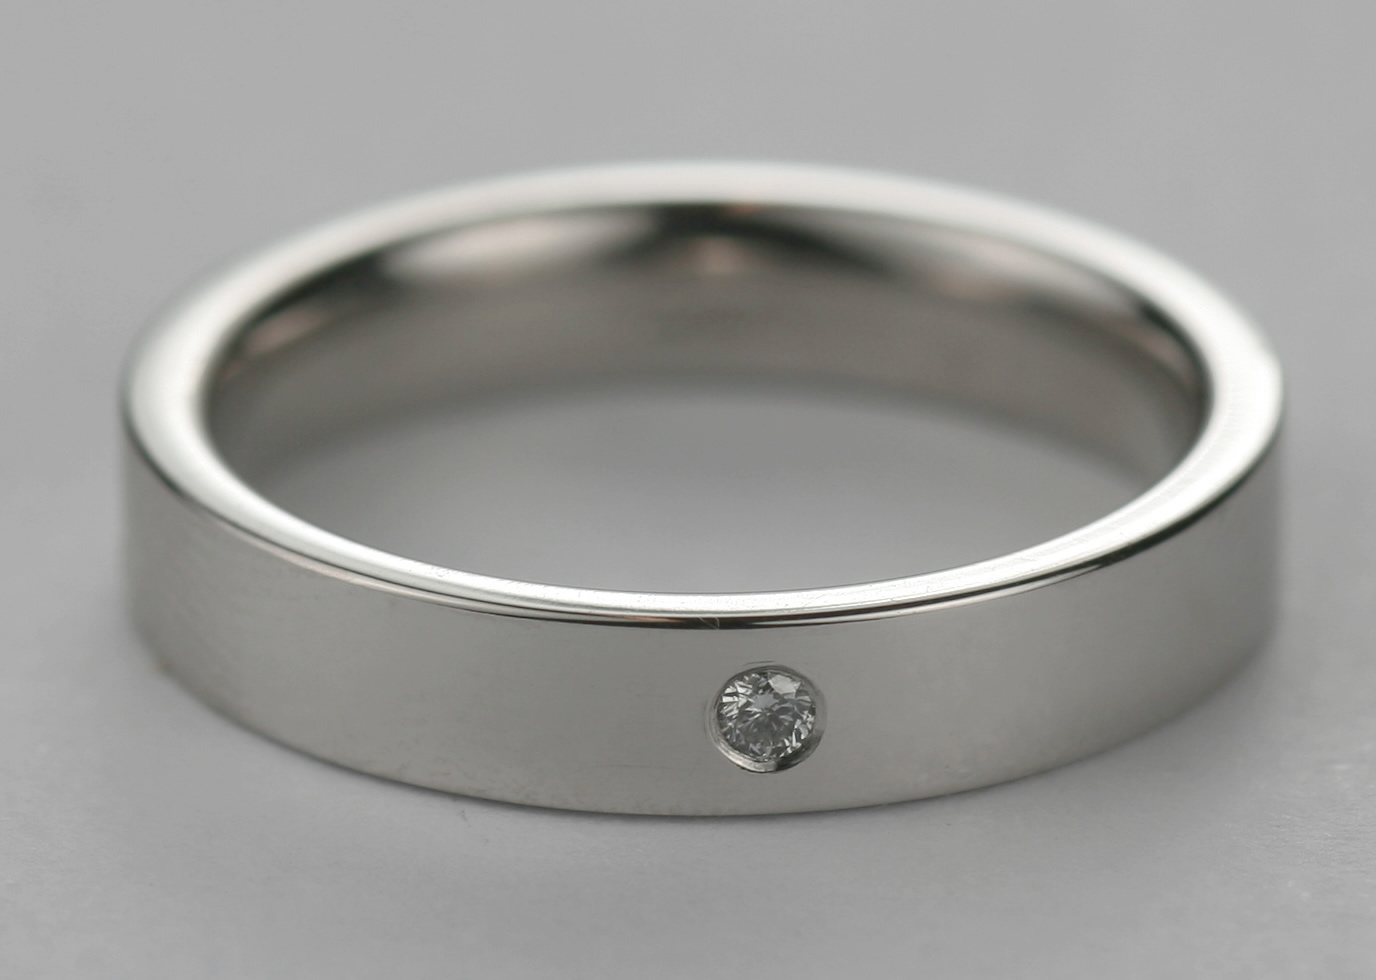 Platinum mens wedding ring with diamond set in the band of the ring